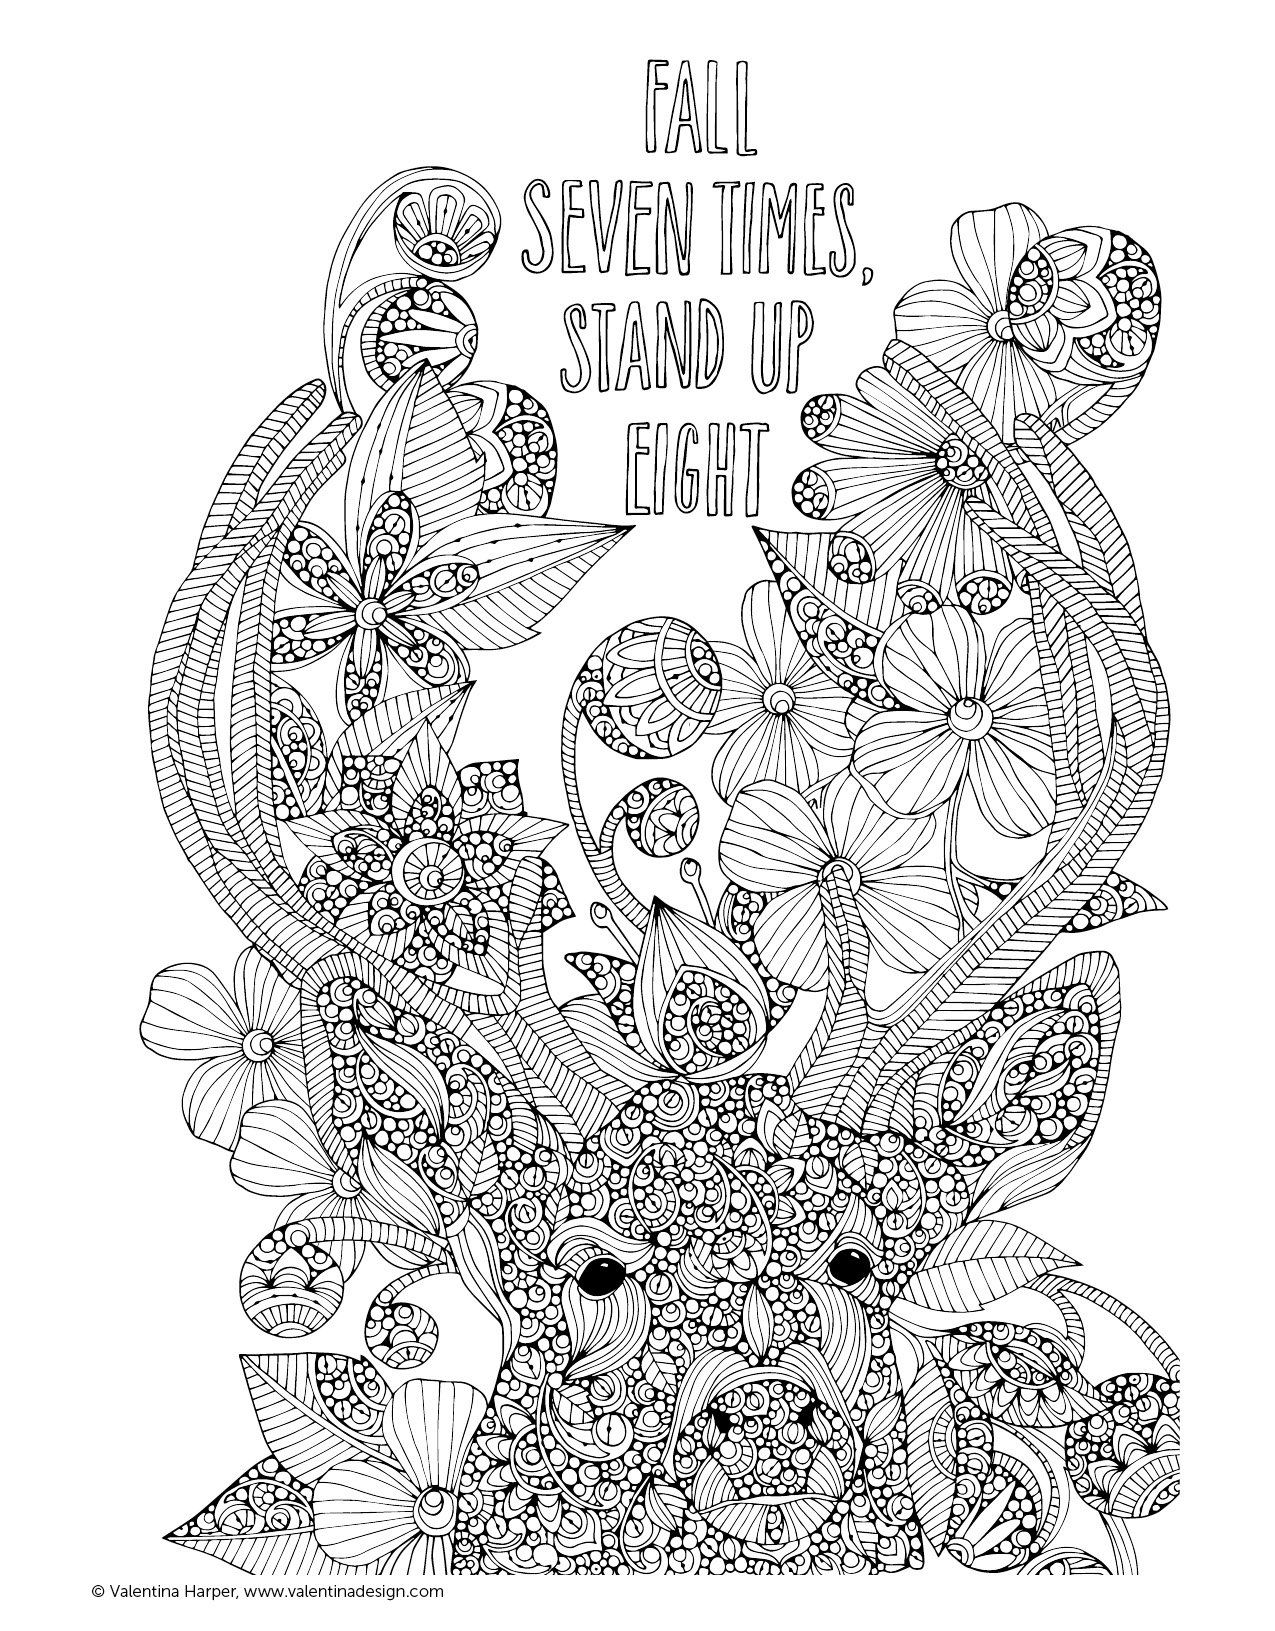 Creative Coloring Inspirations Too: Art Activity Pages to Relax and ...